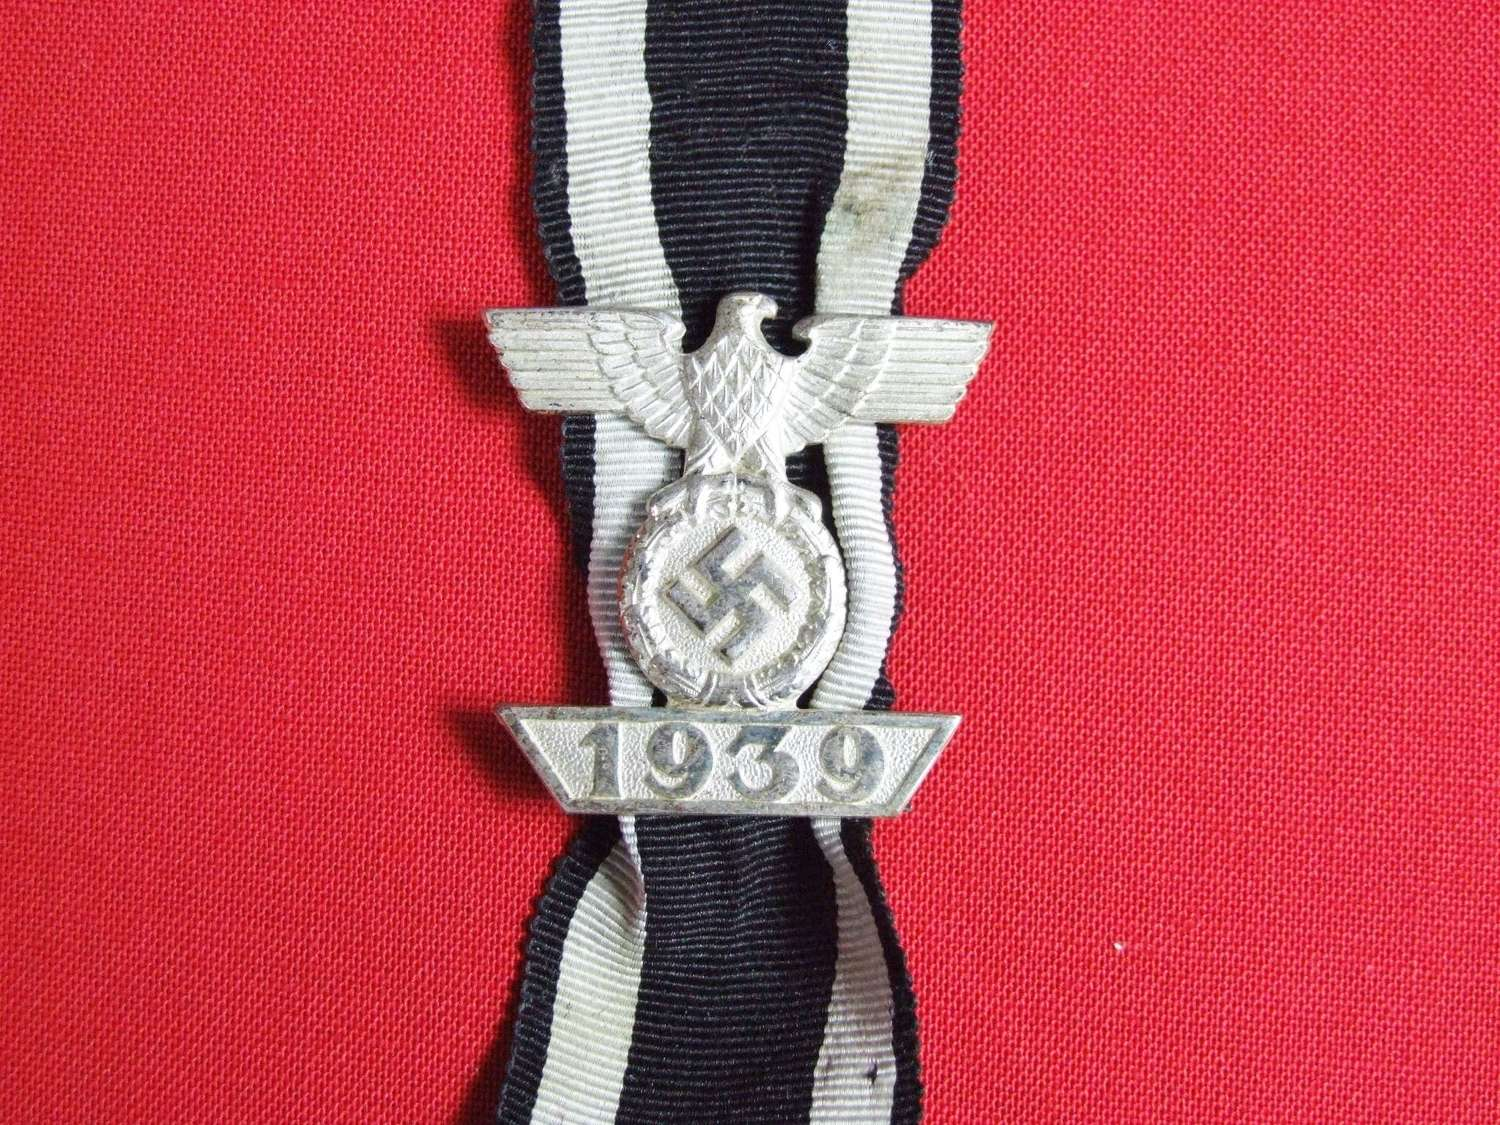 Spange to the Iron Cross Second Class